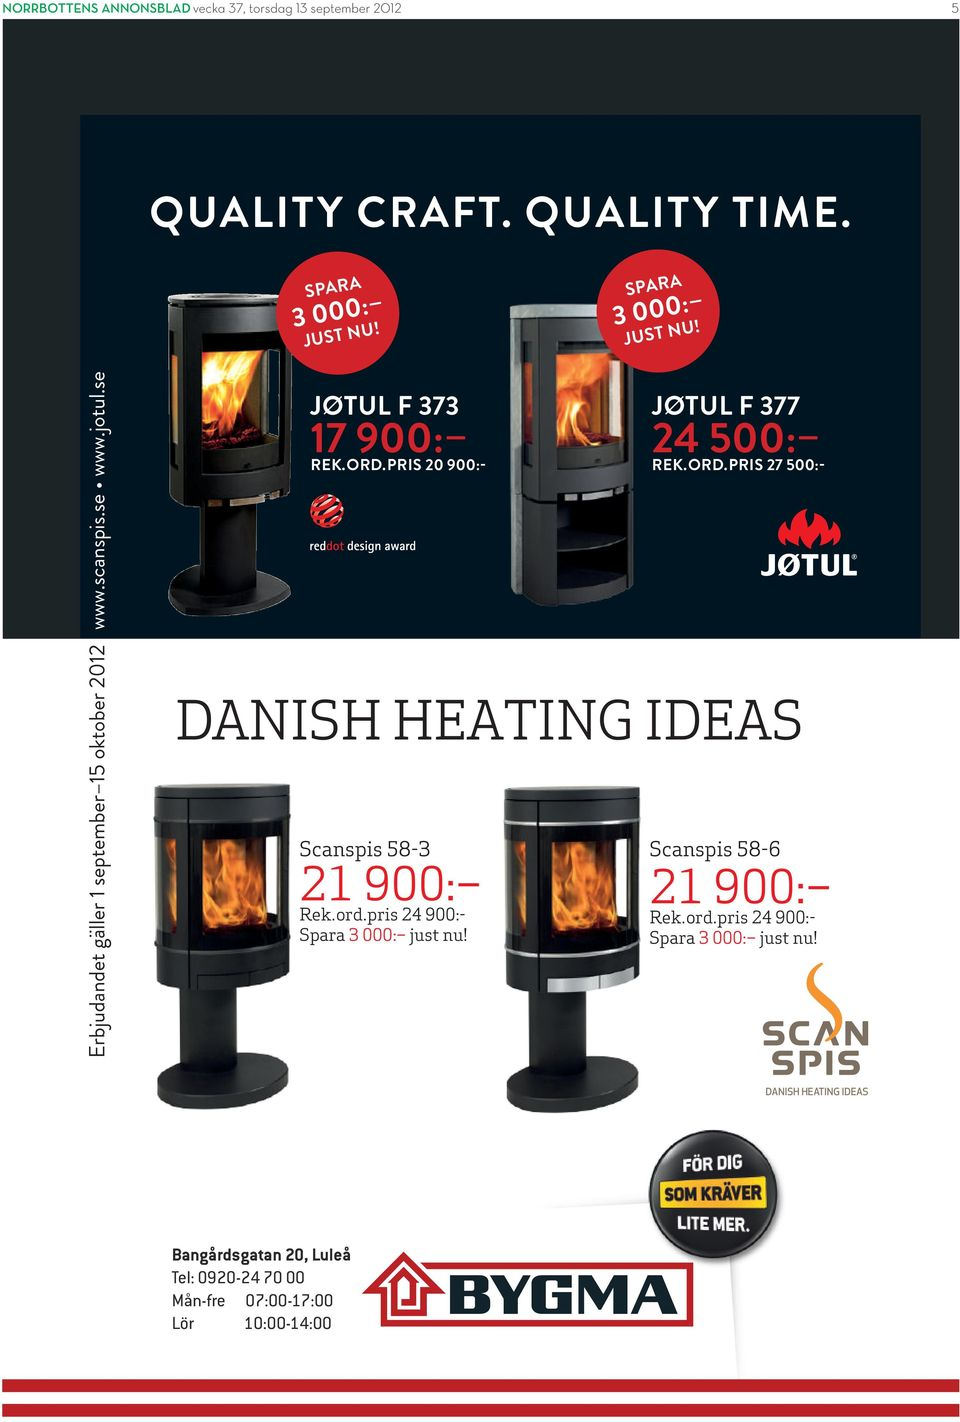 pris 24 900:- Spara 3 000: just nu! JØTUL F 377 24 500: REK. ORD. PRIS 27 500:- DANISH HEATING IDEAS Scanspis 58-6 21 900: Rek. ord.